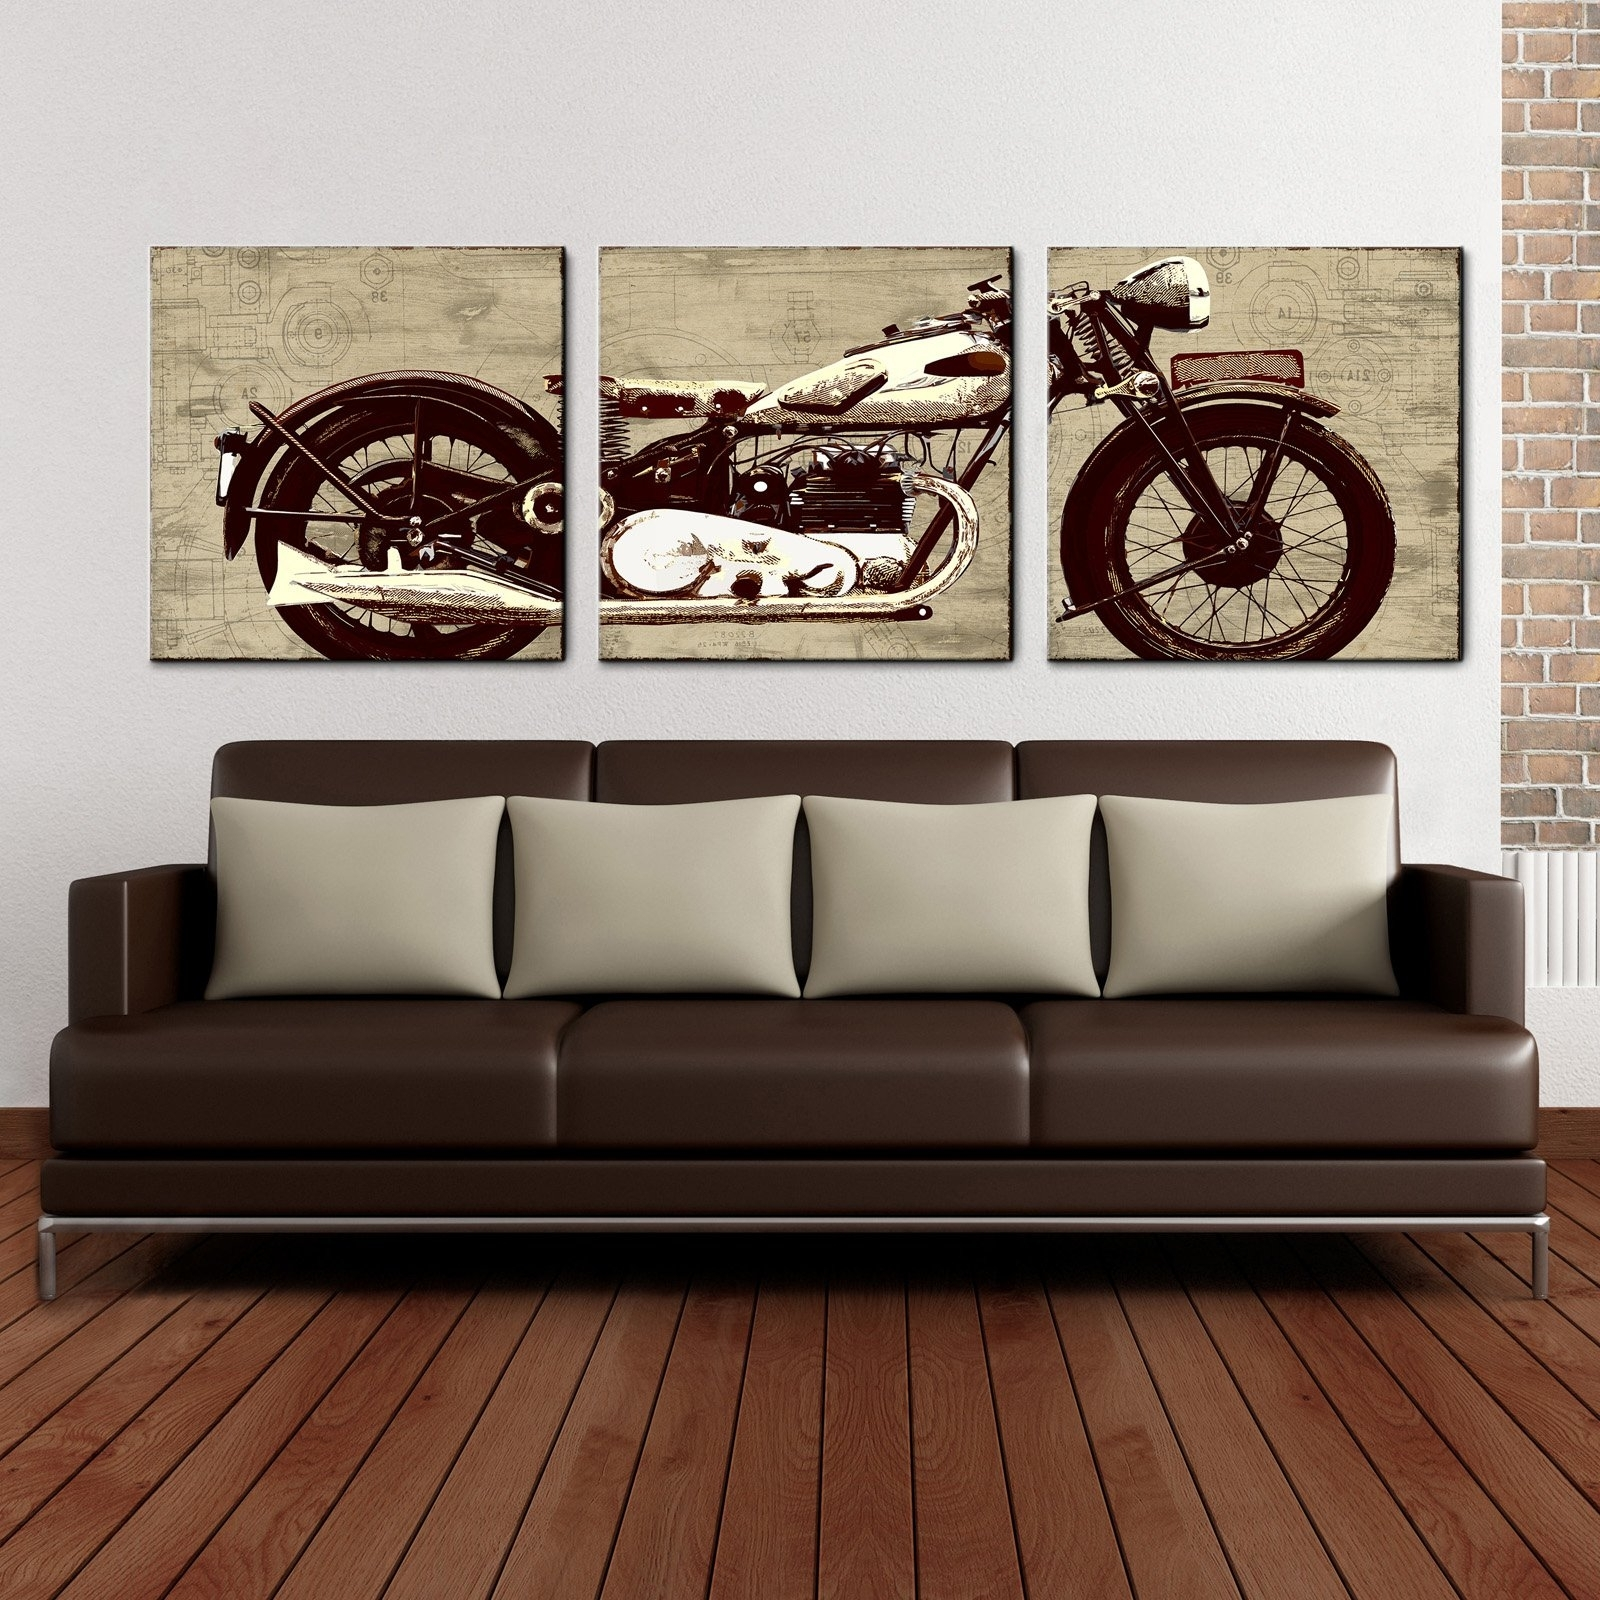 Recent Motorcycle 24 X 72 Canvas Art Print Triptych – Walmart Pertaining To Motorcycle Wall Art (View 9 of 15)